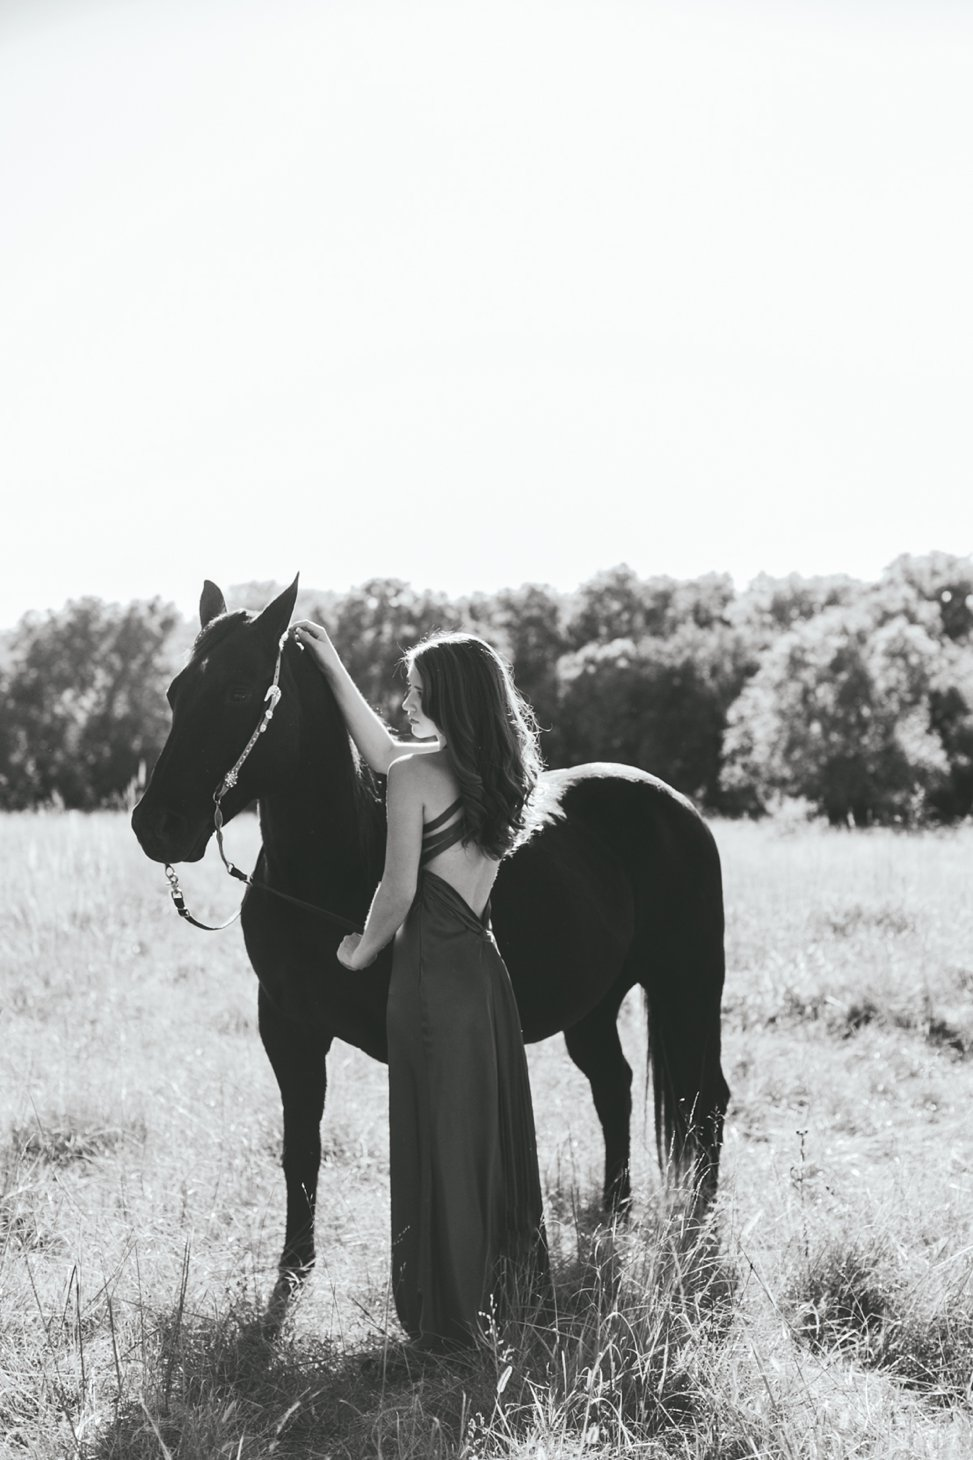 elyssa wyn wiley photography_571